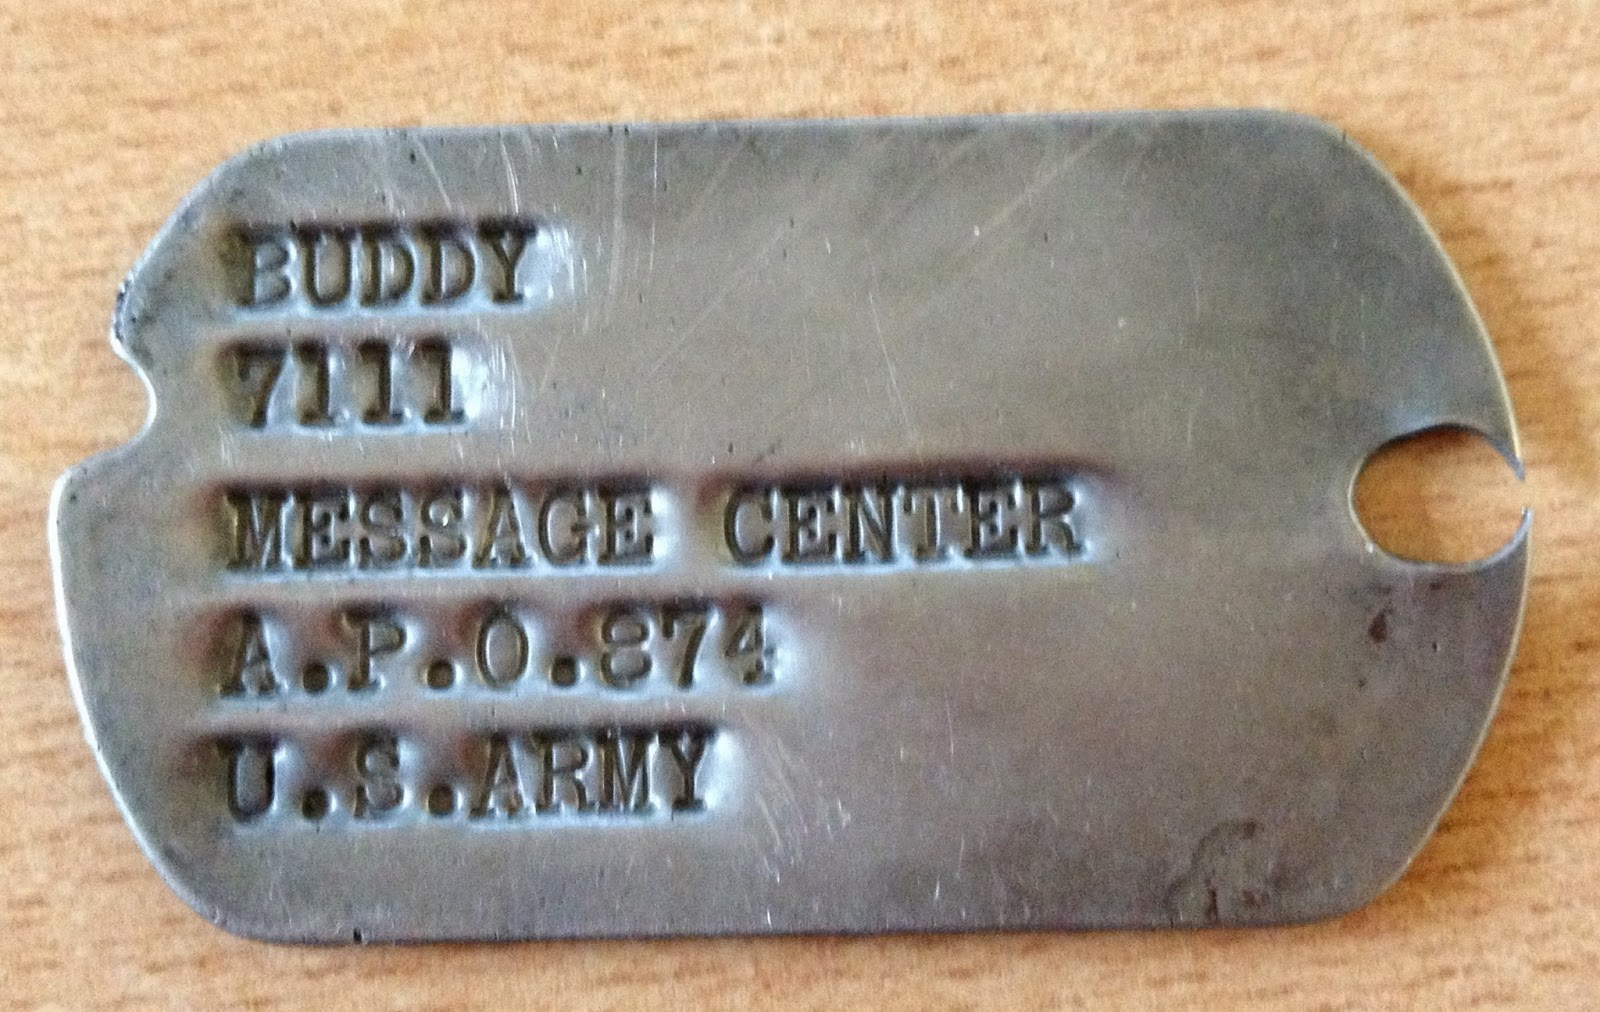 Found Dog Tag Buddy U.S. Amry